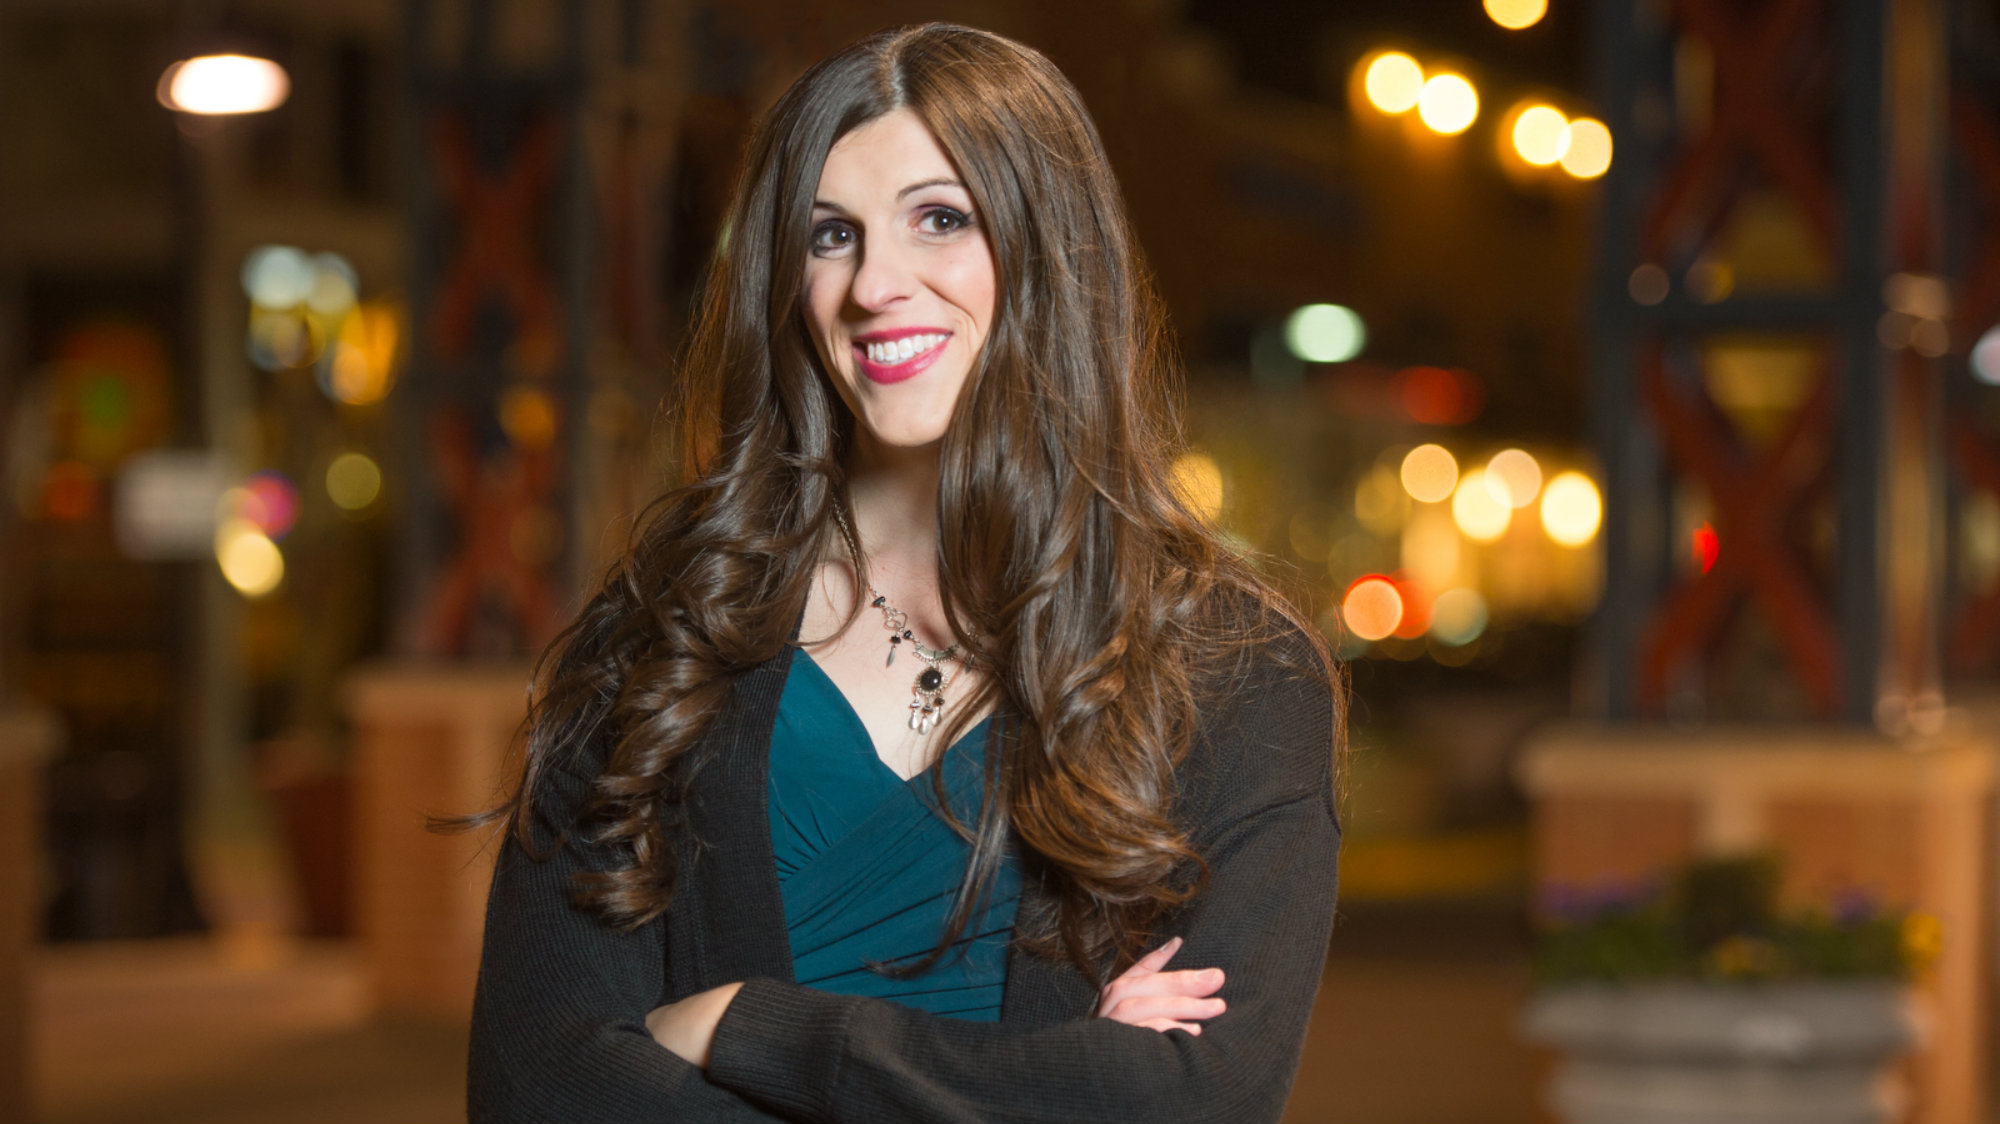 Danica Roem, a transgender Virginia candidate, makes history defeating conservative